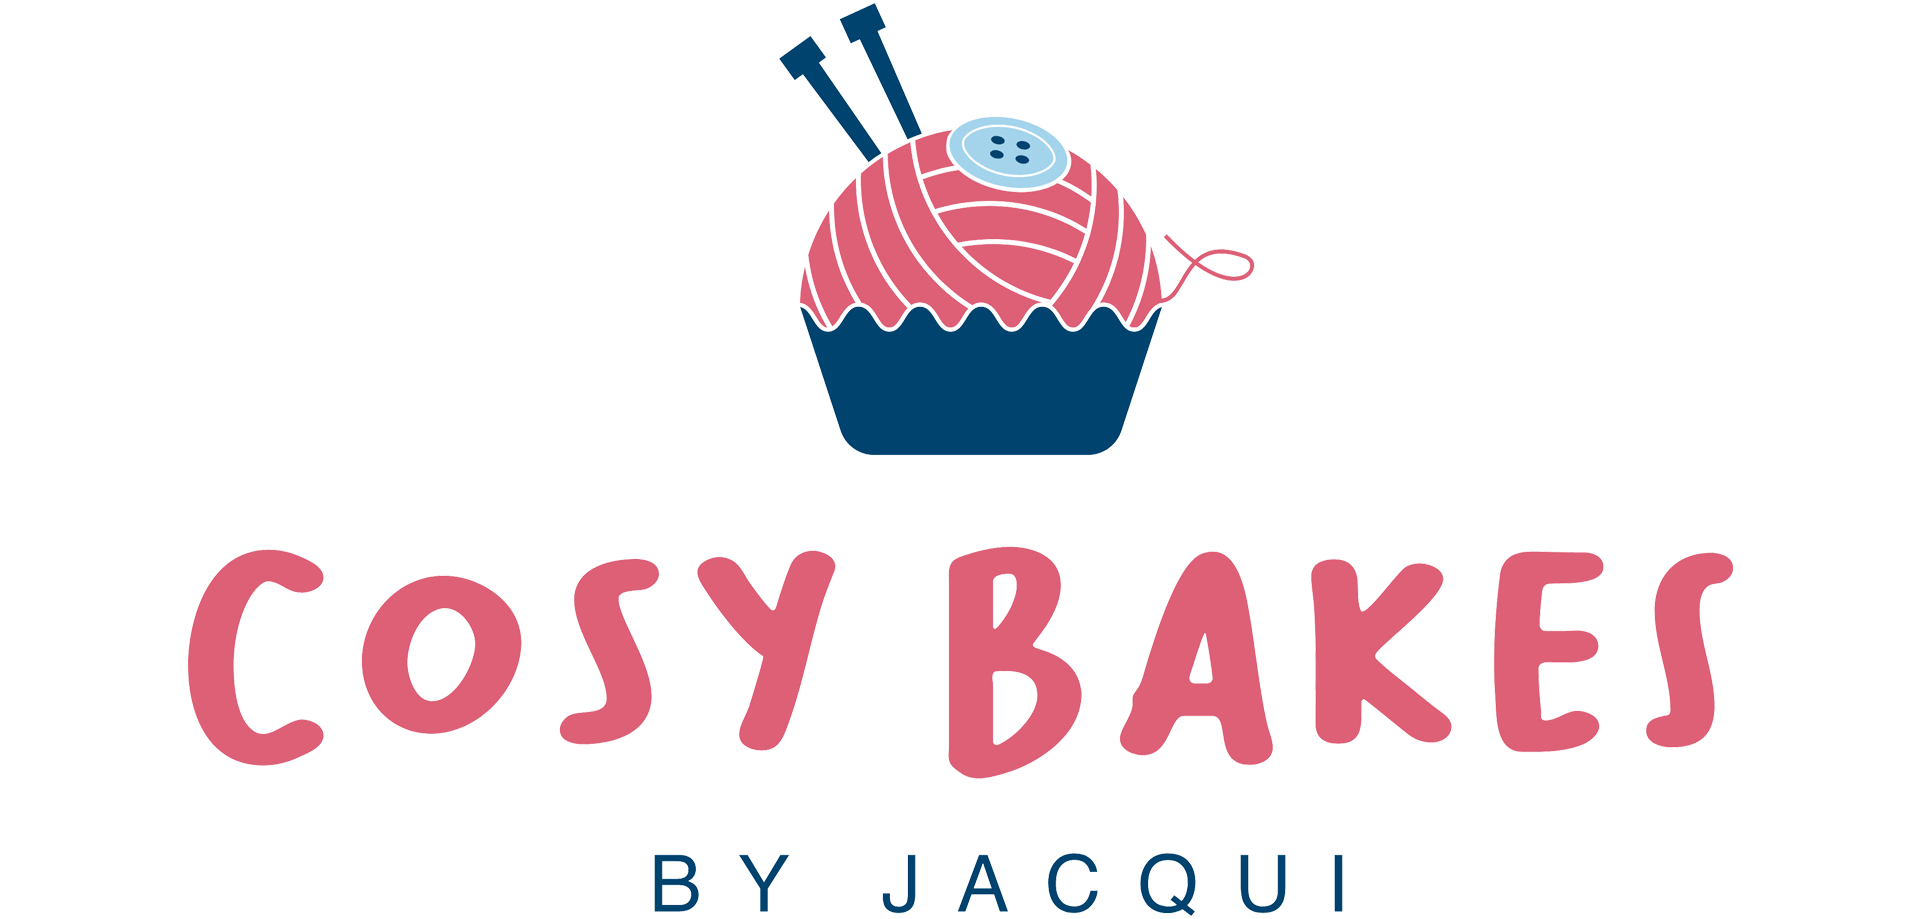 Cosy Bakes by Jacqui logo design